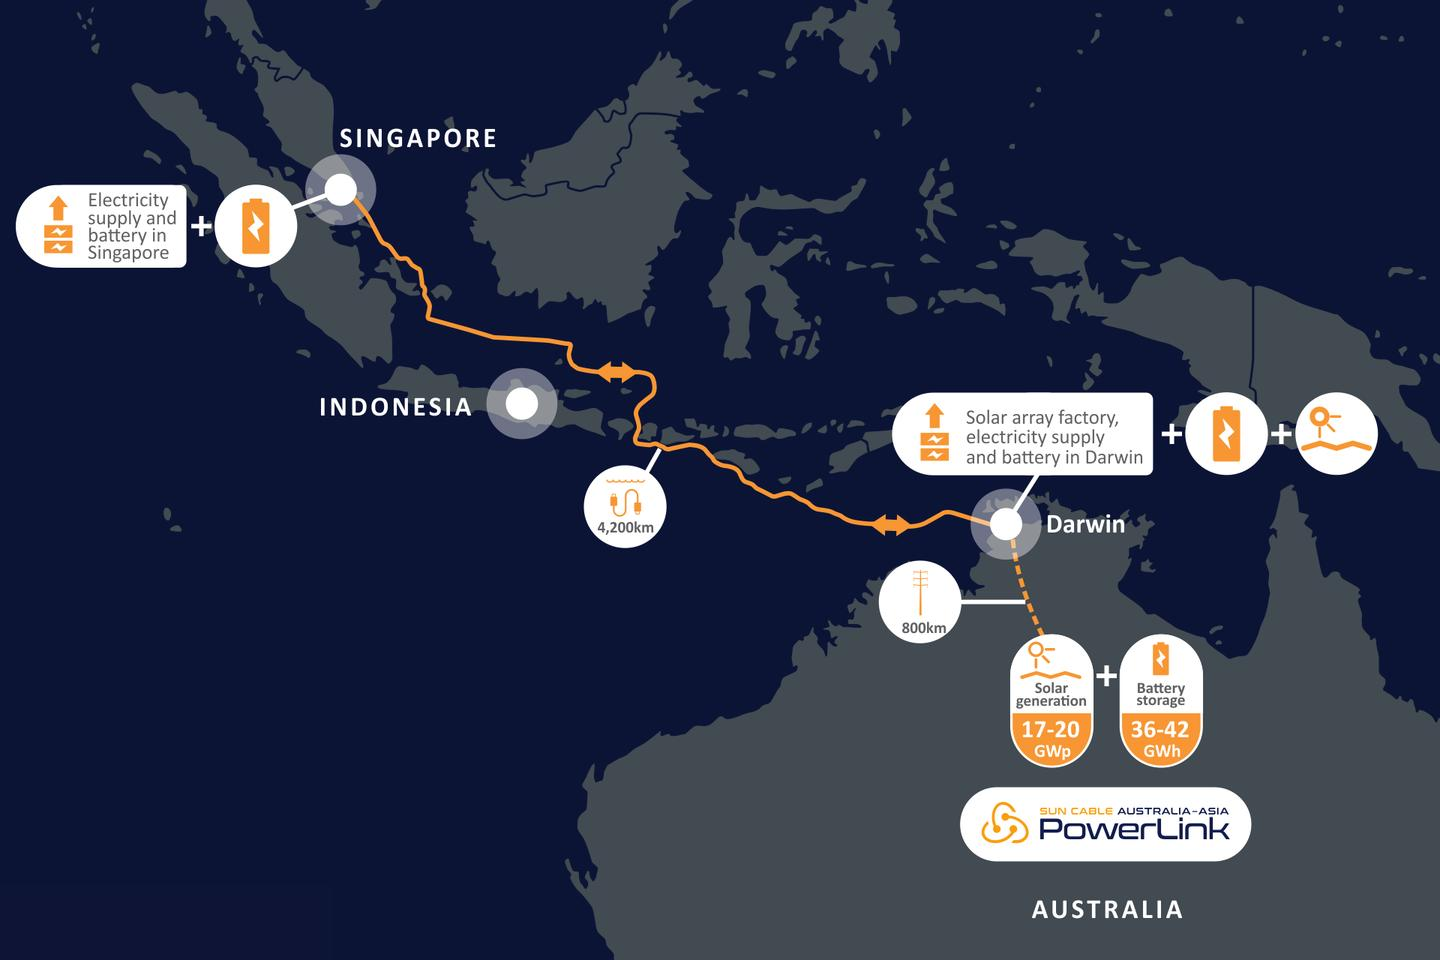 The Australia-Asia PowerLink project will connect Australia and Singapore with the biggest solar array and the biggest battery storage facility the world has ever seen